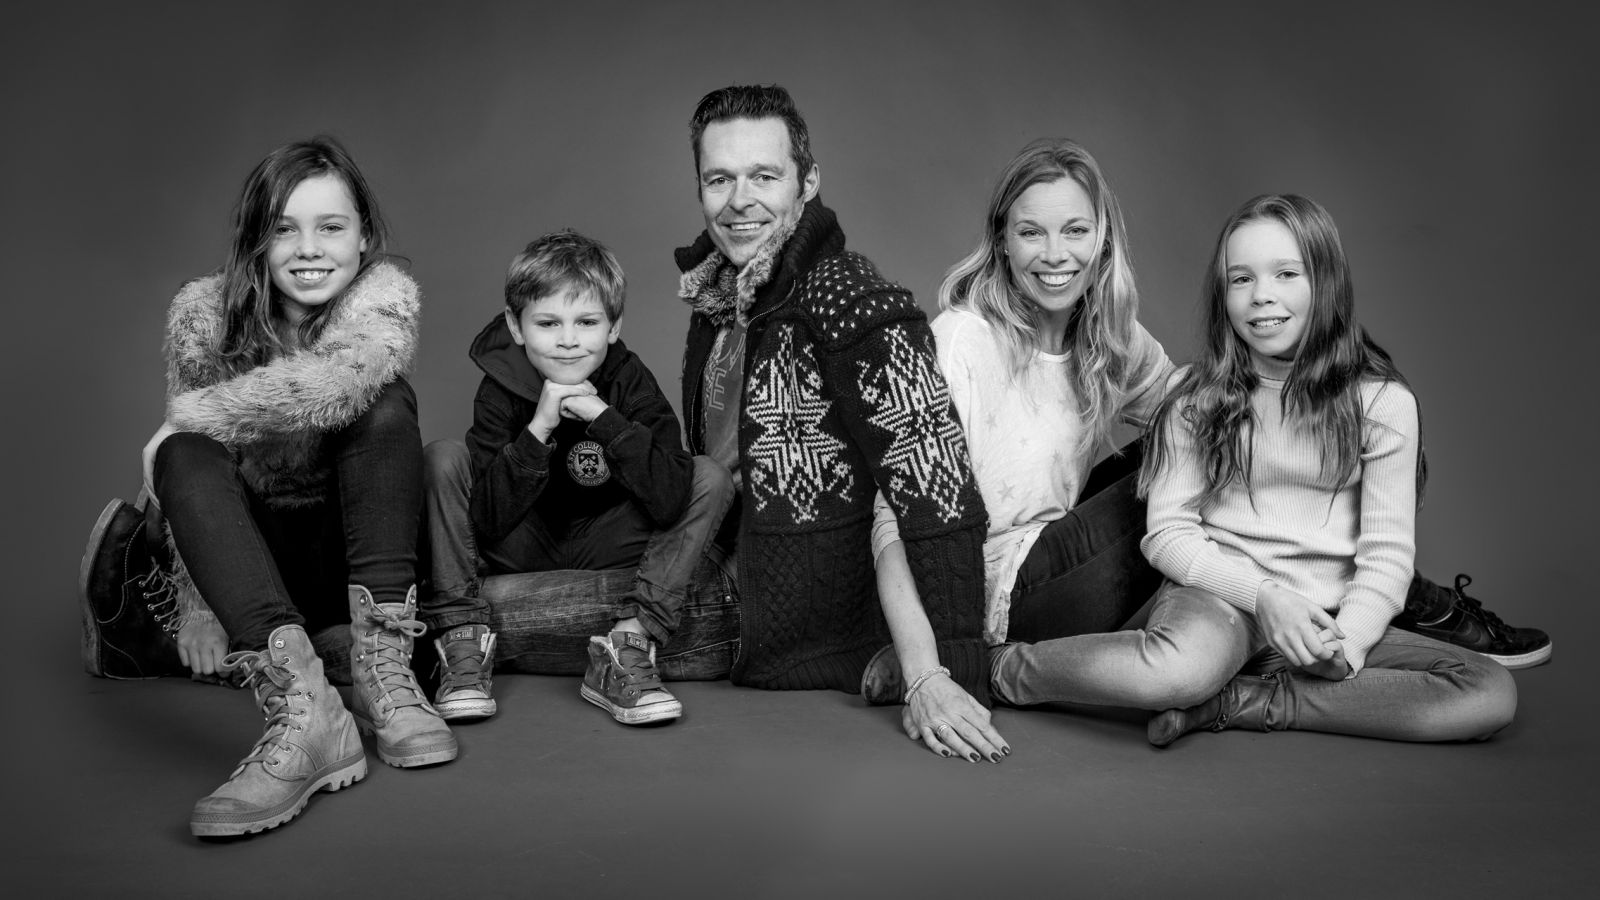 Studio family portrait with 3 children sitting on the floor with grey background